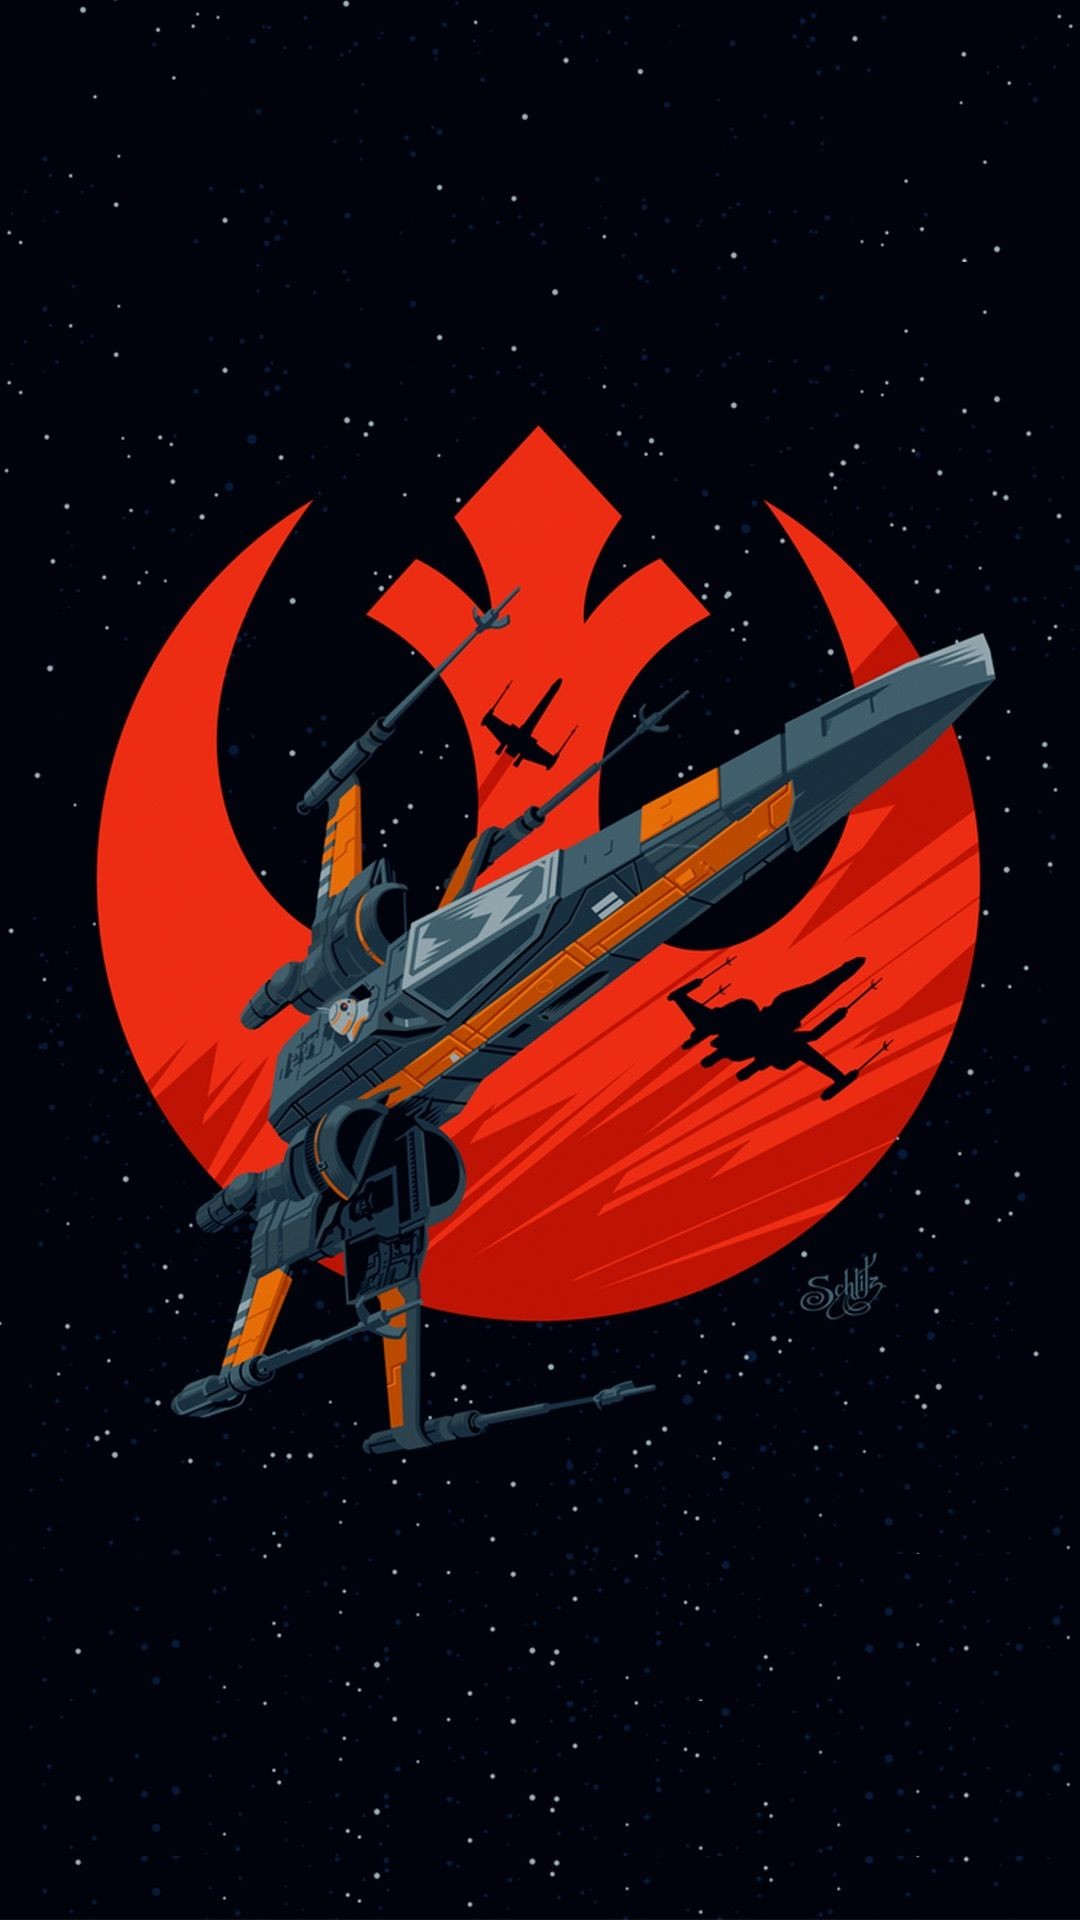 Cool Wallpapers For Phones Phone Wallpapers Cellphone Star Wars X Wing Fan Art 1080x1920 Download Hd Wallpaper Wallpapertip